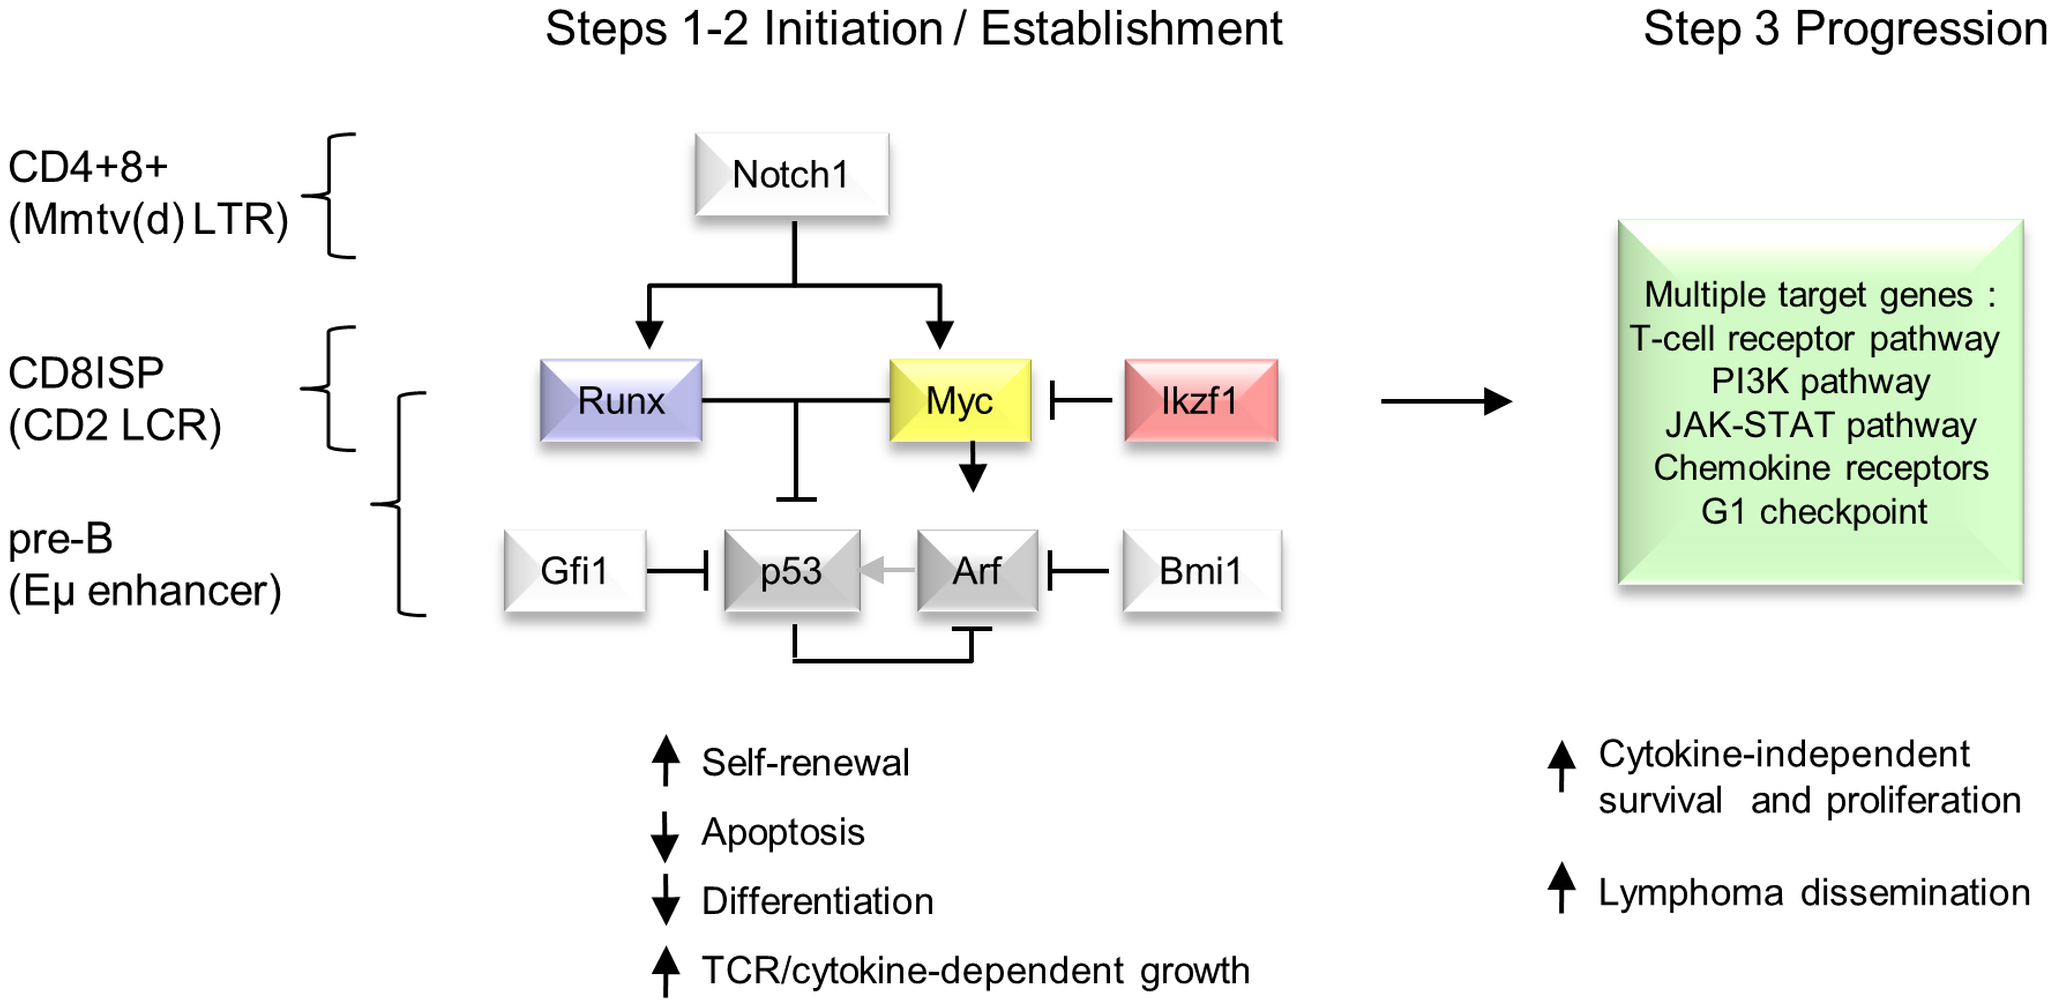 Hierarchical model of MoMLV-induced T-cell lymphomagenesis and preferred target genes in Myc transgenic systems.